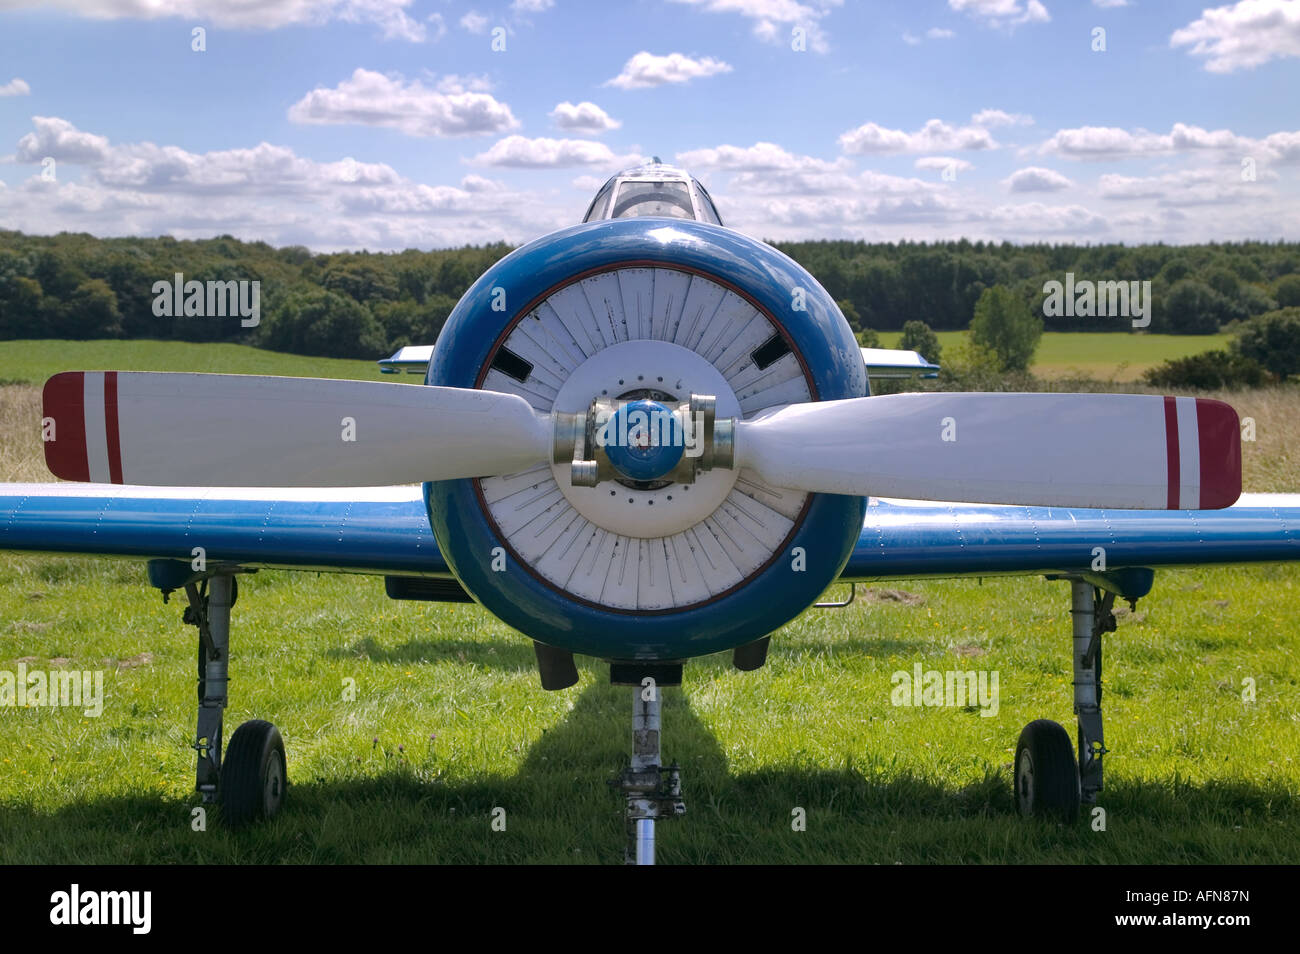 Front of an vintage Russian WW2 propeller plane These are now used for aerobatic stunt flying Stock Photo